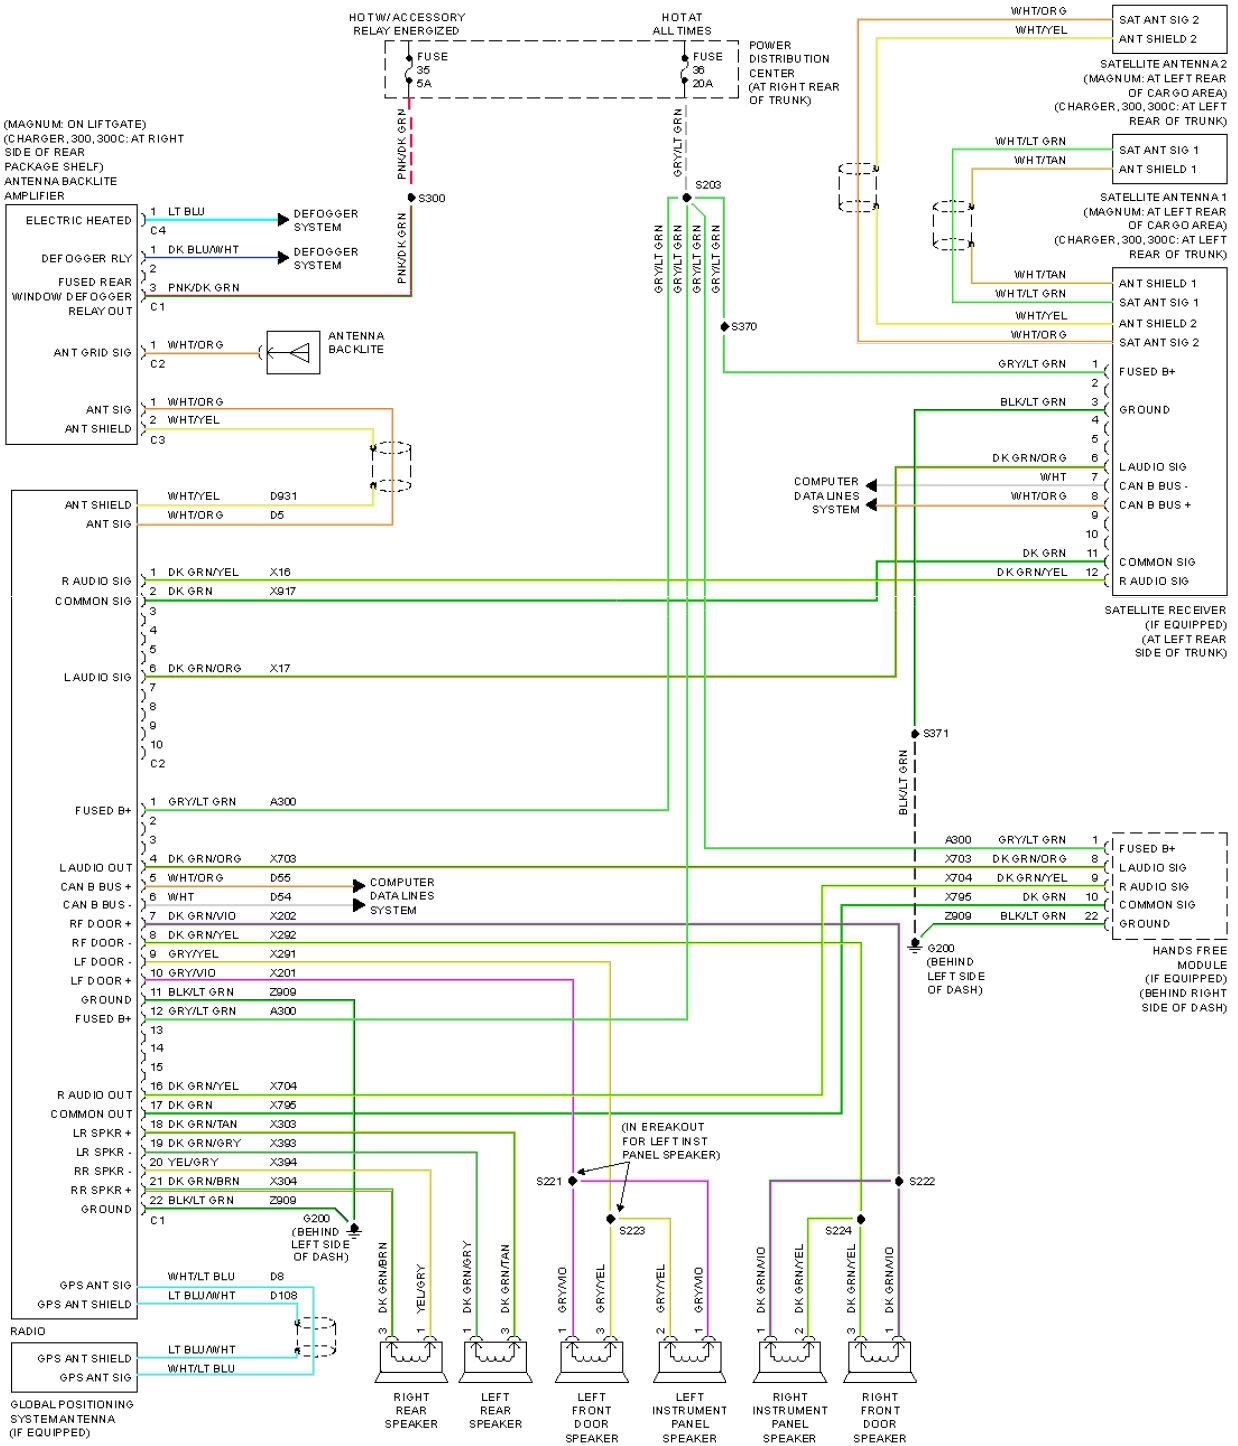 2013 Chrysler 200 Stereo Wiring - Wiring Diagram & Cable ... on